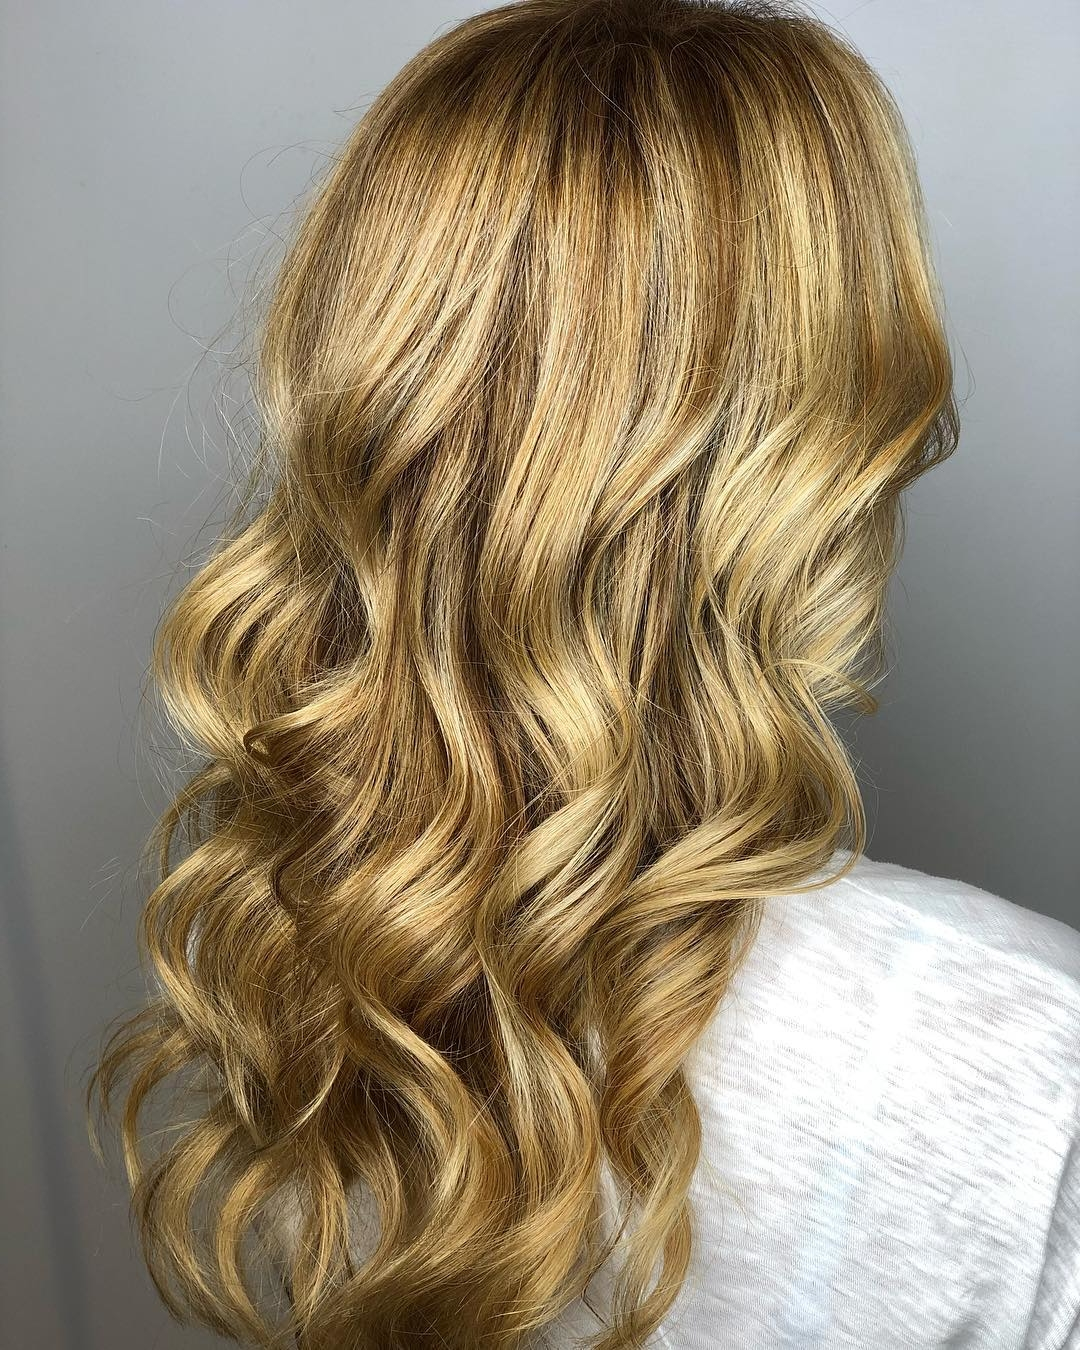 50 golden blonde hair color ideas hair colour style